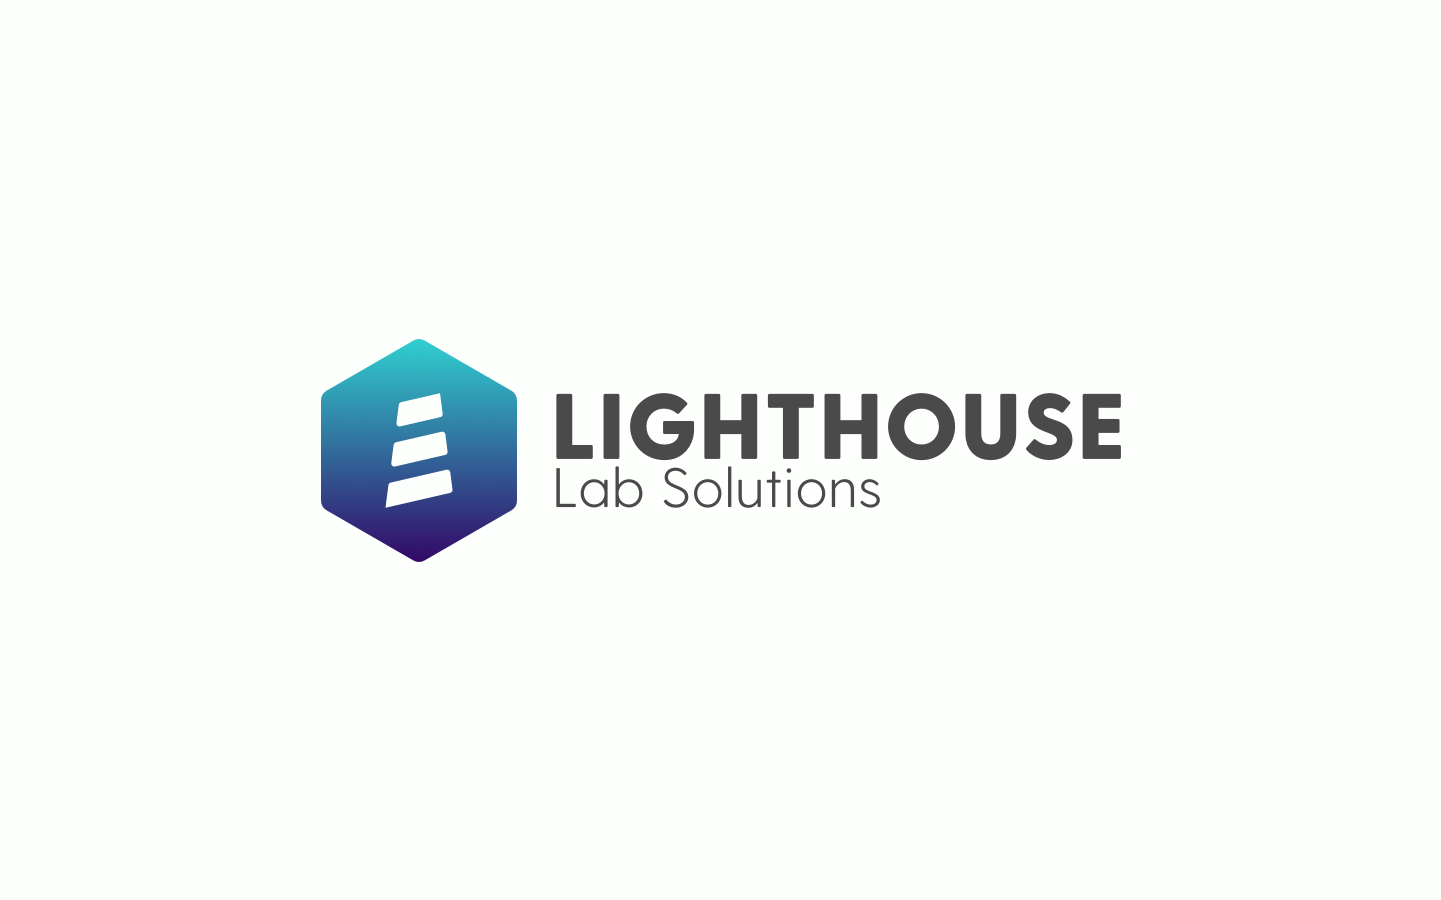 lighthouse-logo-gradient-horizontal